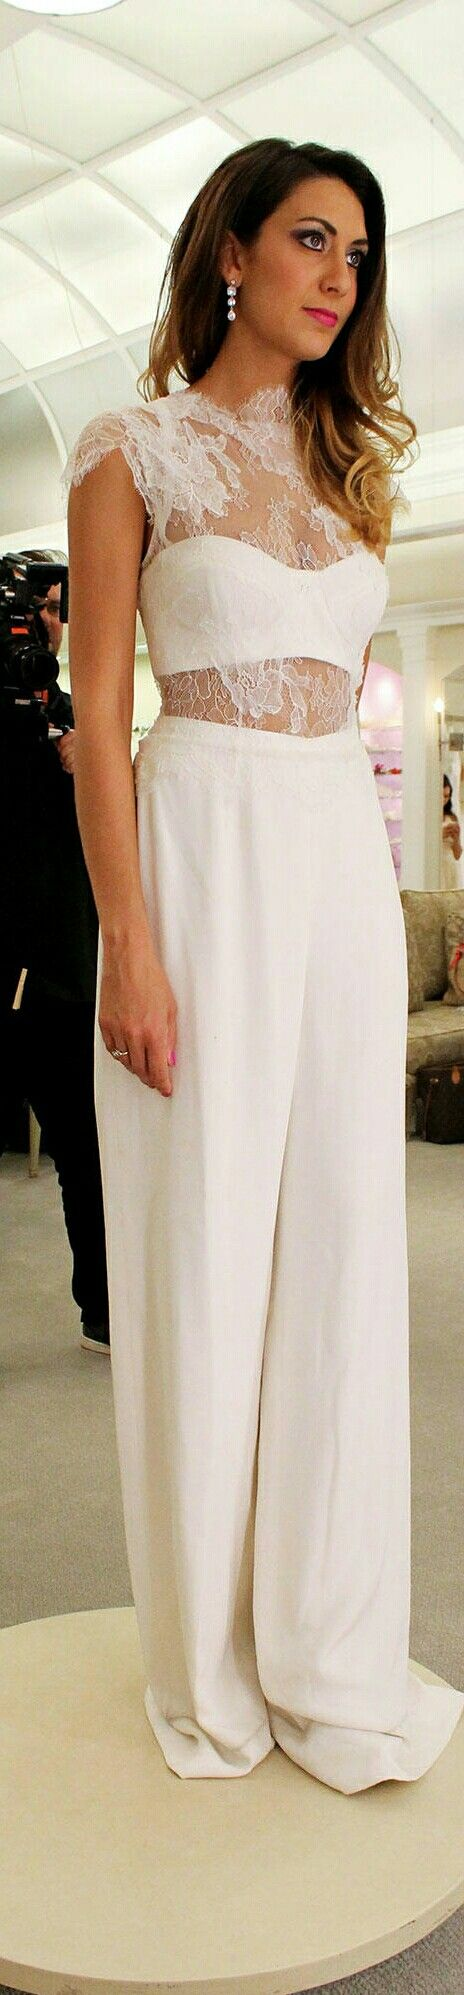 "Natalie Bullard is Trying on a Wedding Jumpsuit for Season 14 - ""The Dress"" - [TLC];April 6, 2016.:"